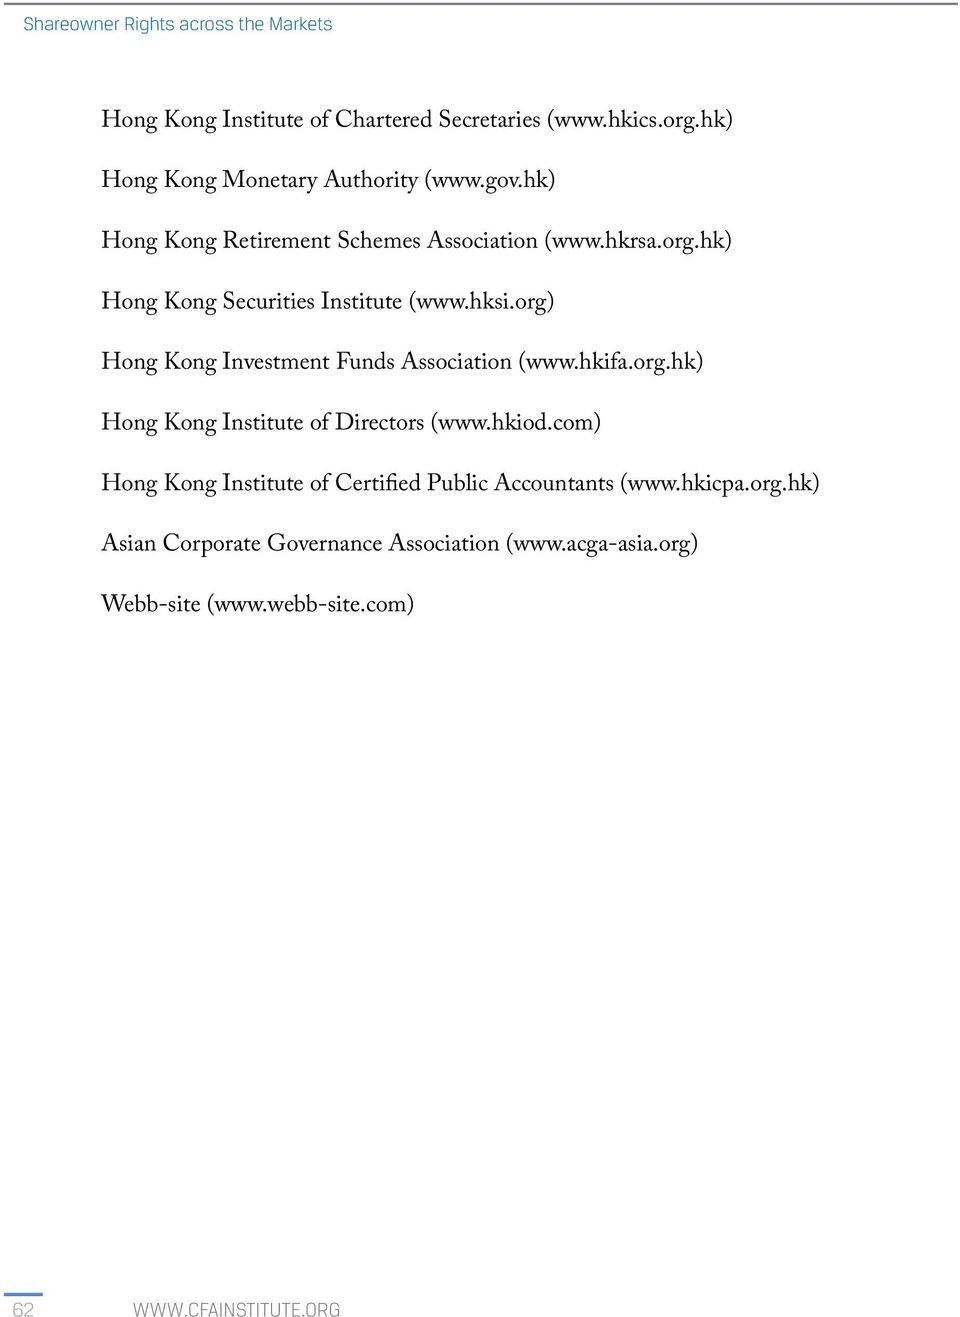 org) Hong Kong Investment Funds Association (www.hkifa.org.hk) Hong Kong Institute of Directors (www.hkiod.